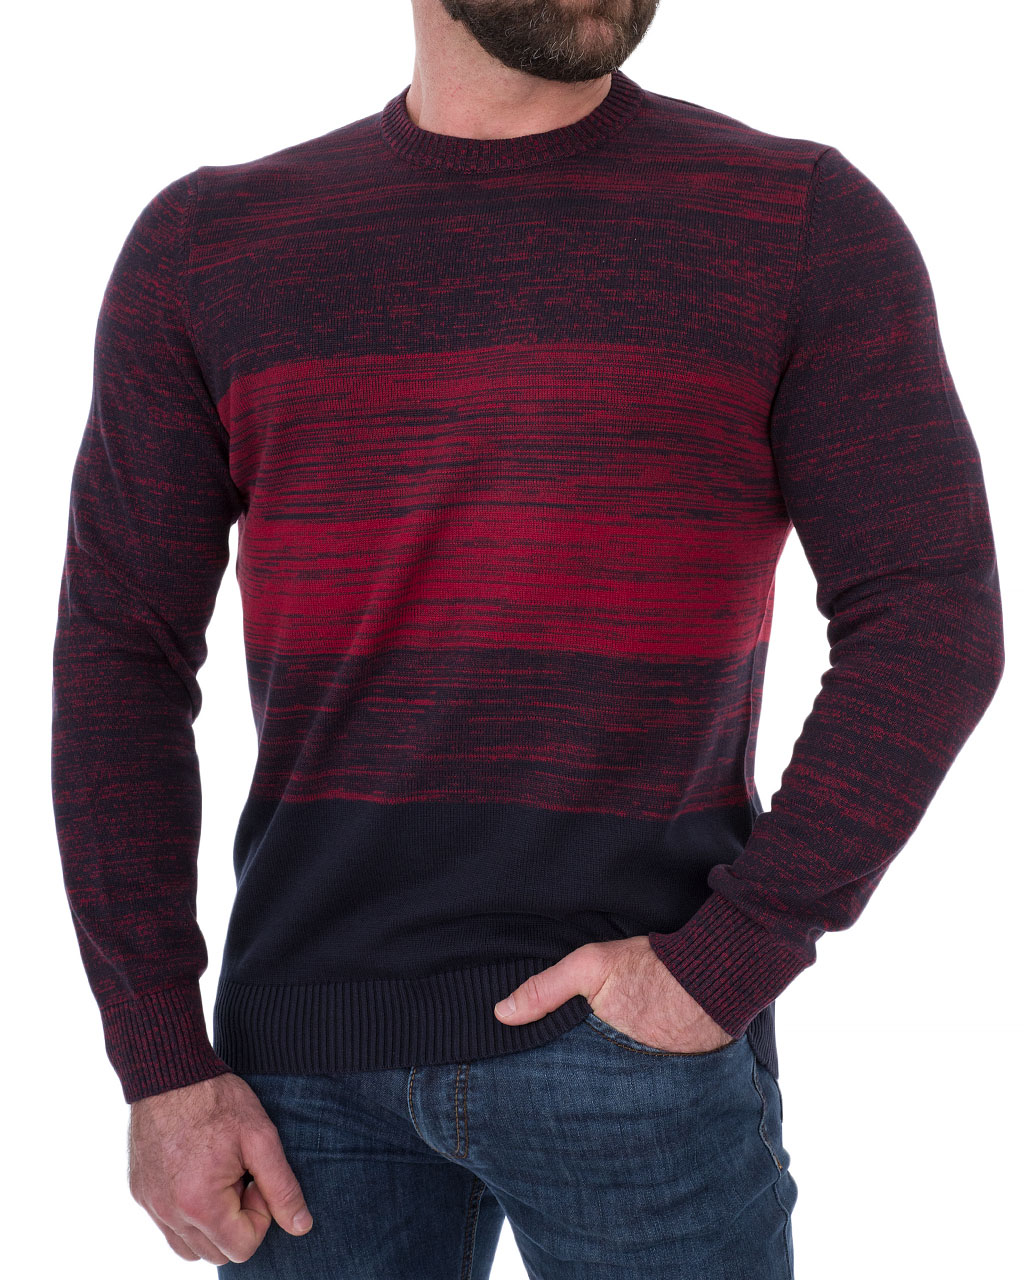 Men's jumper 7450-45522-960/19-20--2 (5)